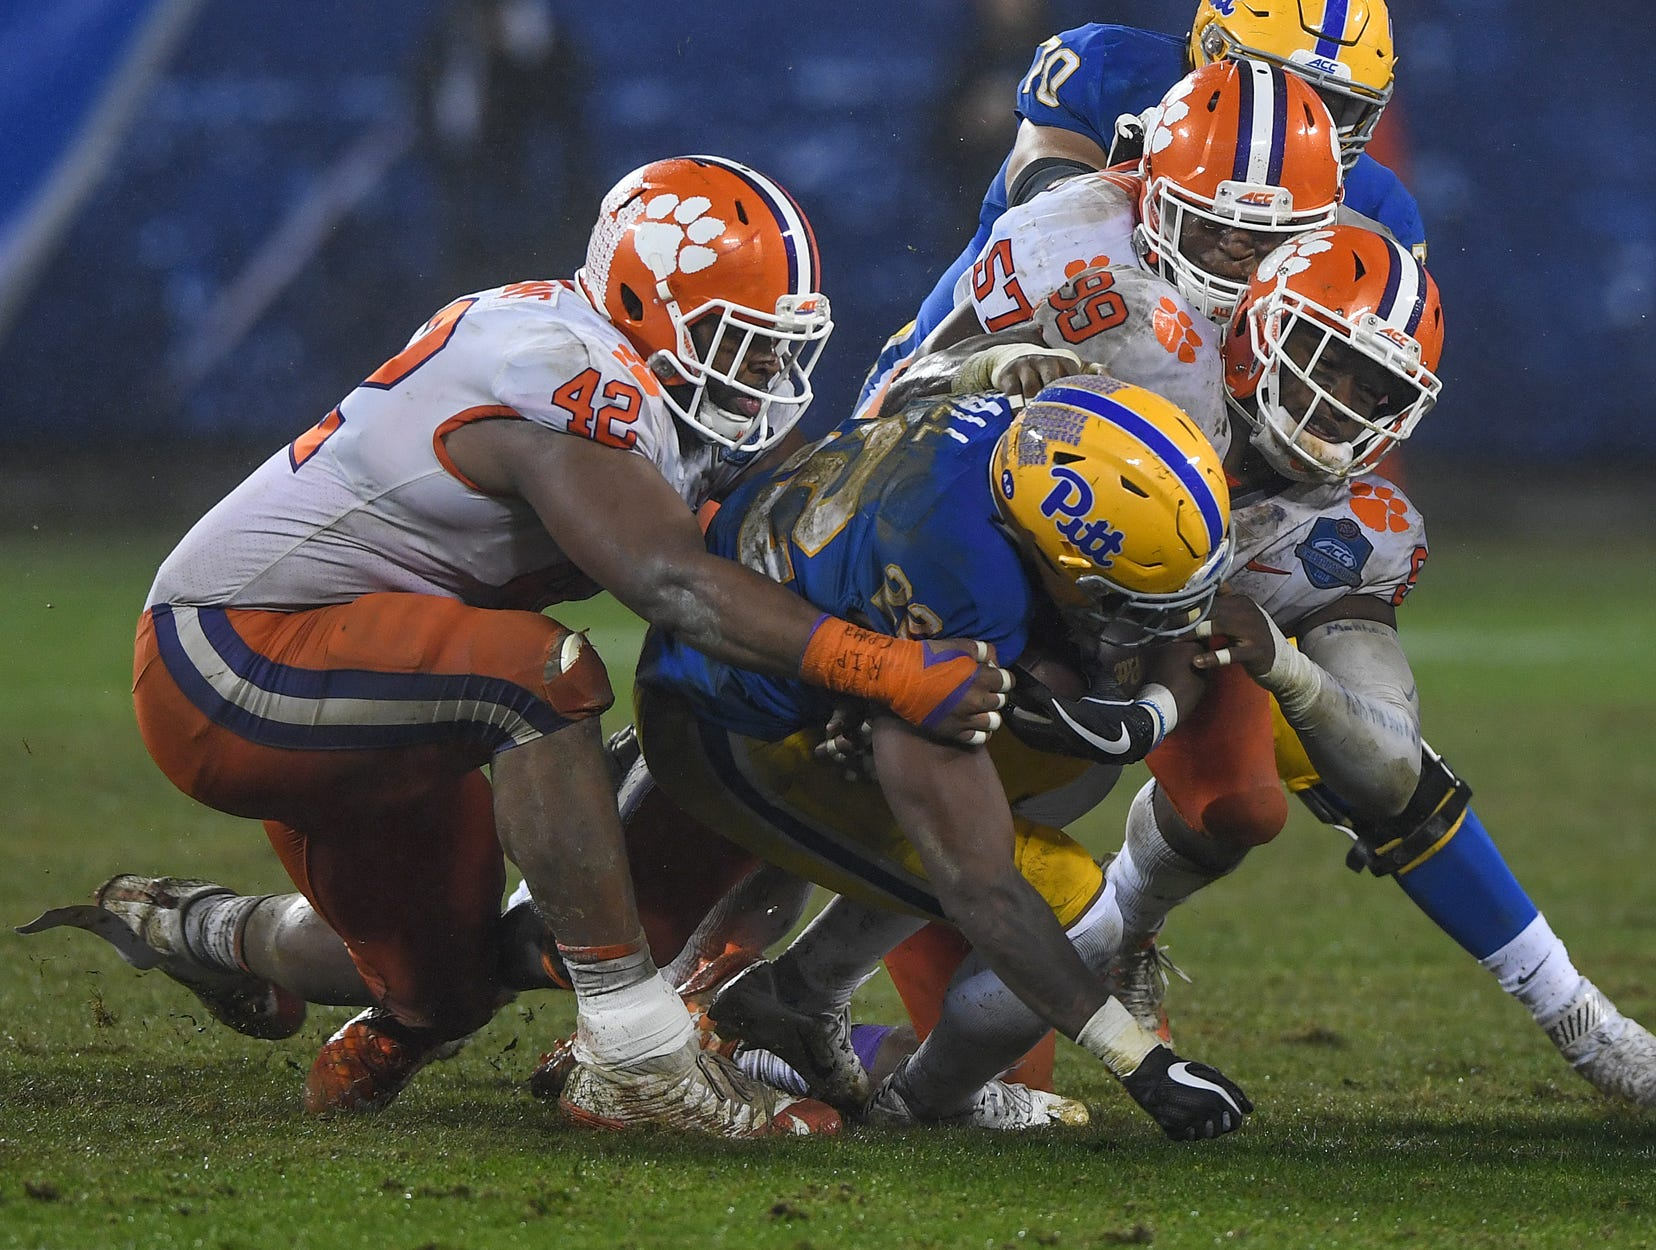 Clemson defensive lineman Christian Wilkins (42), defensive lineman Clelin Ferrell (99), and linebacker Tre Lamar (57) bring down Pittsburgh running back Darrin Hall (22) during the 3rd quarter of the Dr. Pepper ACC Championship at Bank of America Stadium in Charlotte, N.C. Saturday, December 1, 2018.